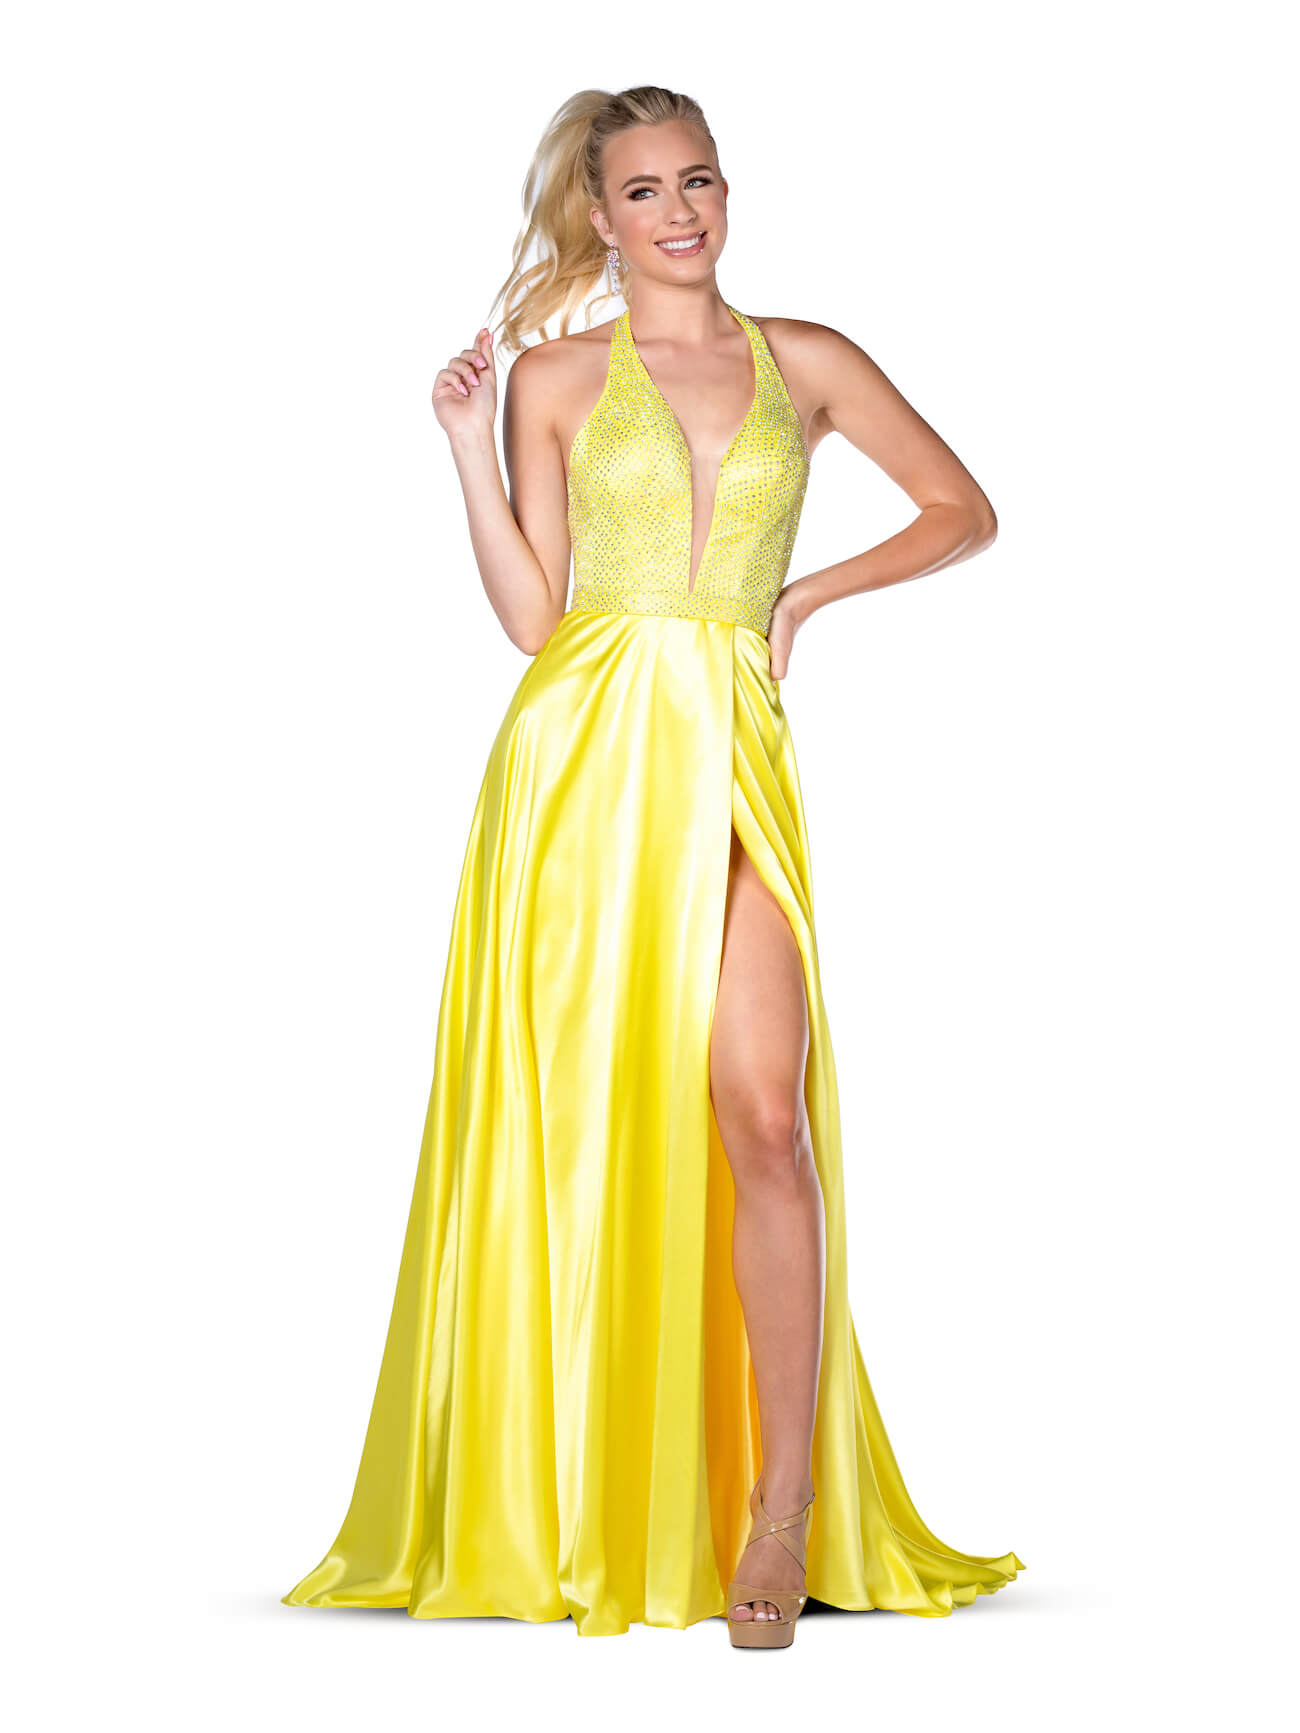 Queenly size 6 Vienna Yellow Side slit evening gown/formal dress